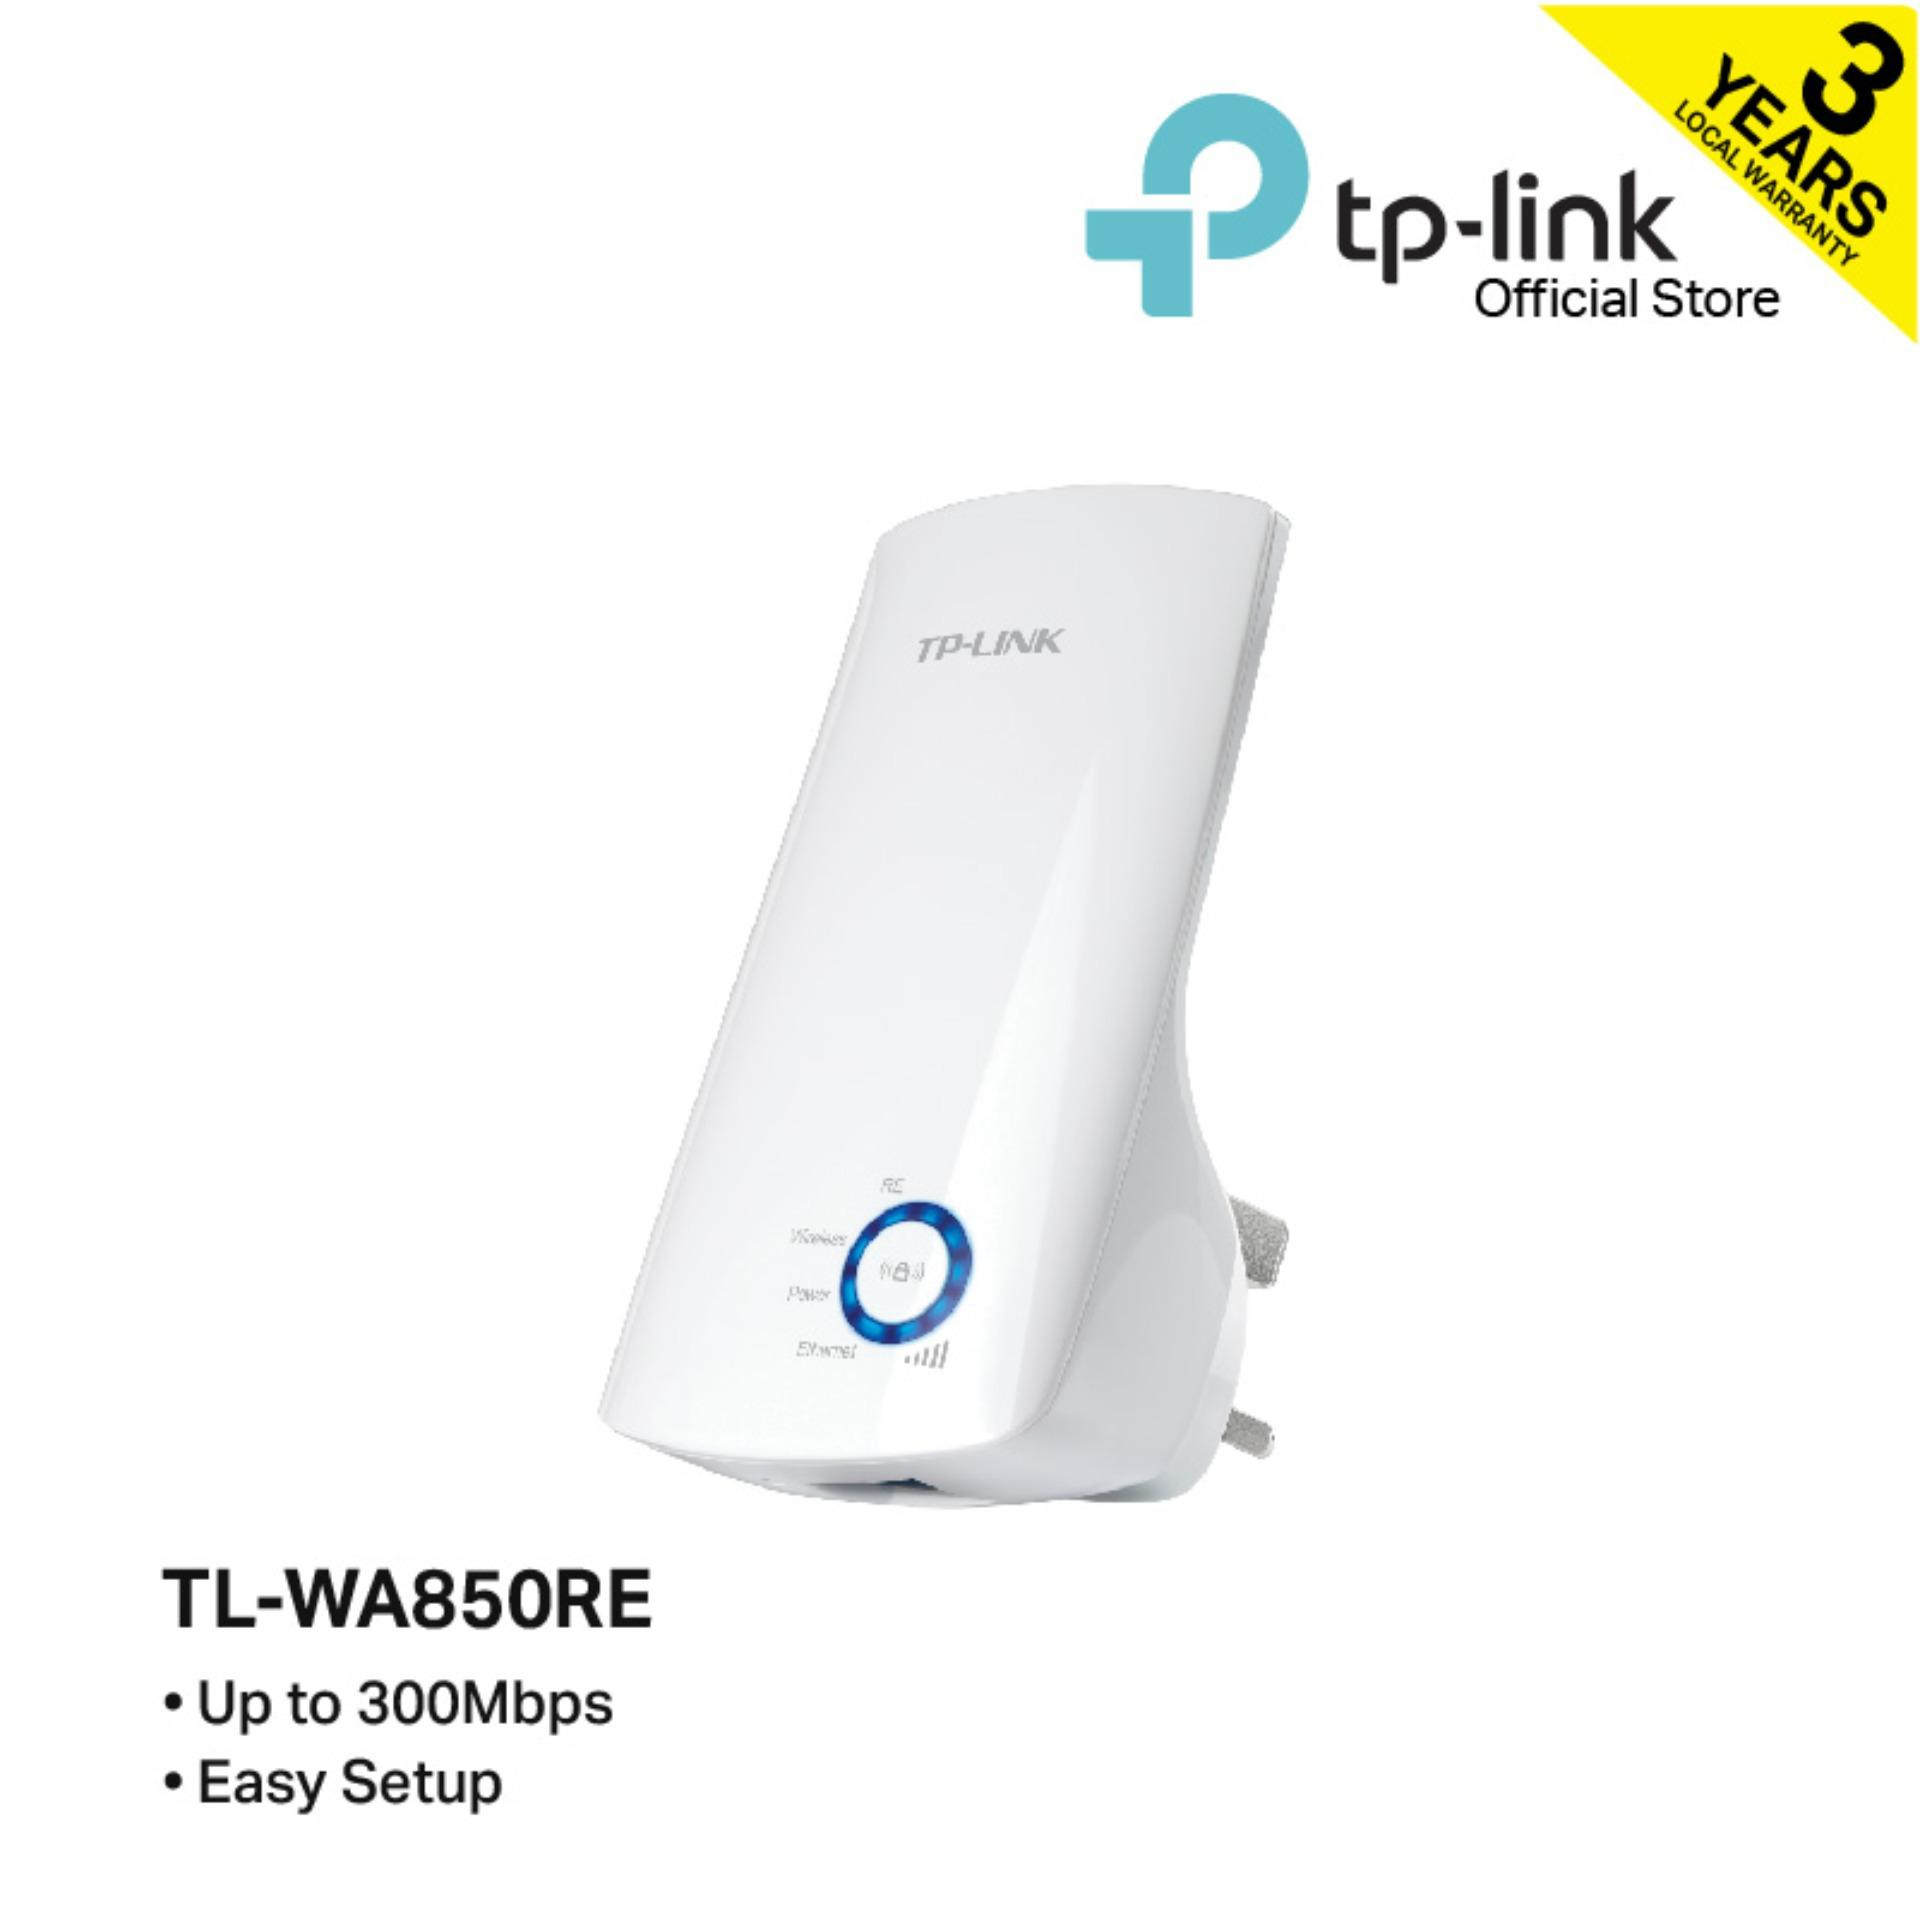 Tplink Official Store Buy At Best Price In Tp Link Tl Wn 823n 300mbps Wa850re Universal Wi Fi Range Extender